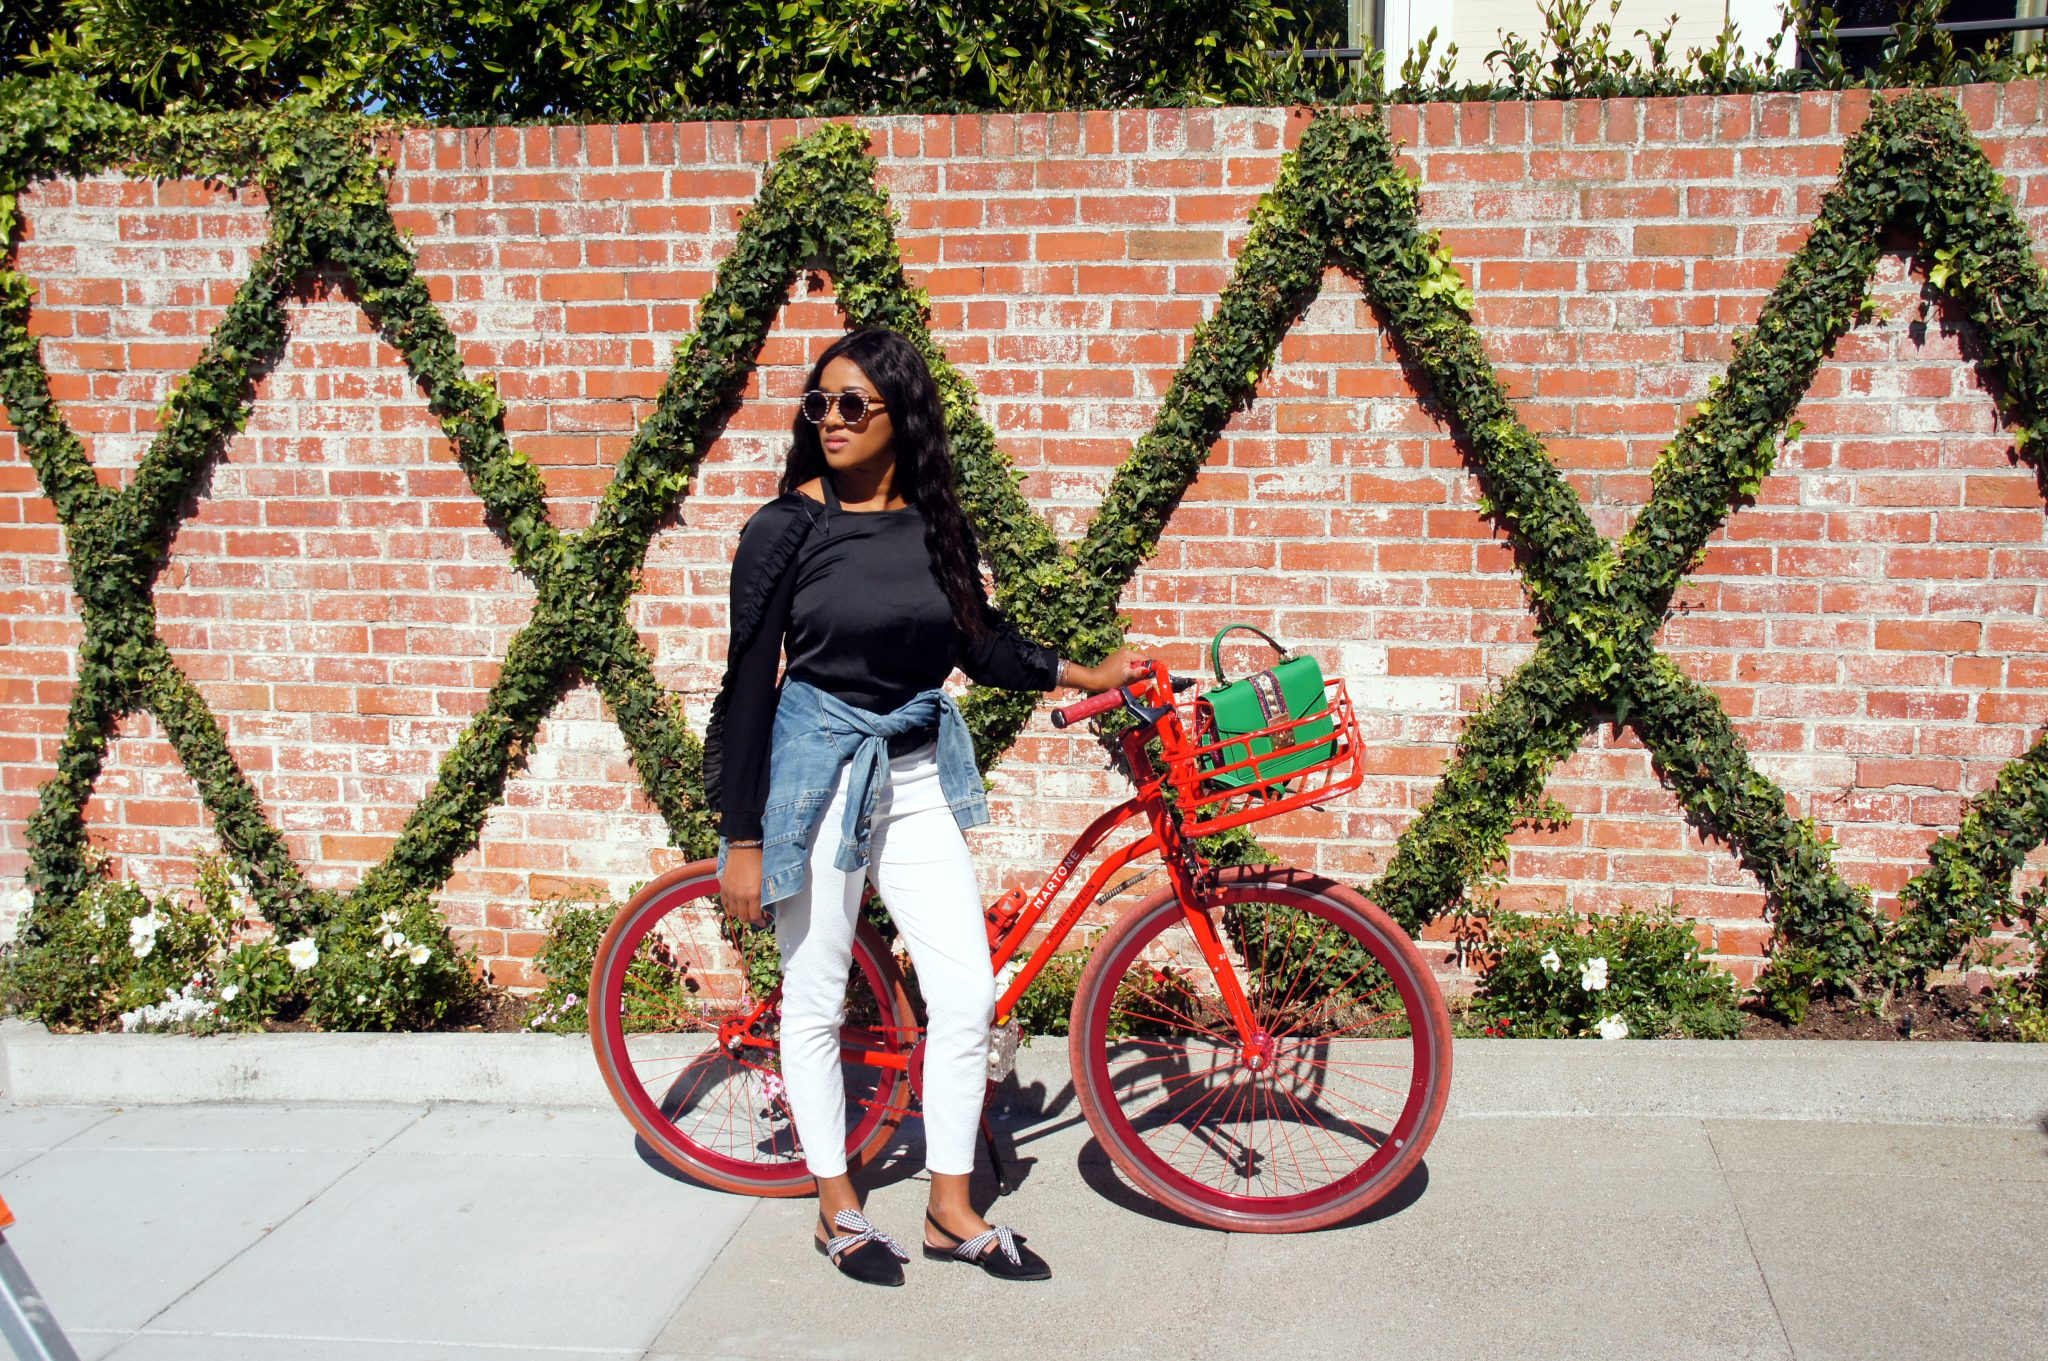 me with a red bike in front of a brick wall in San Francisco